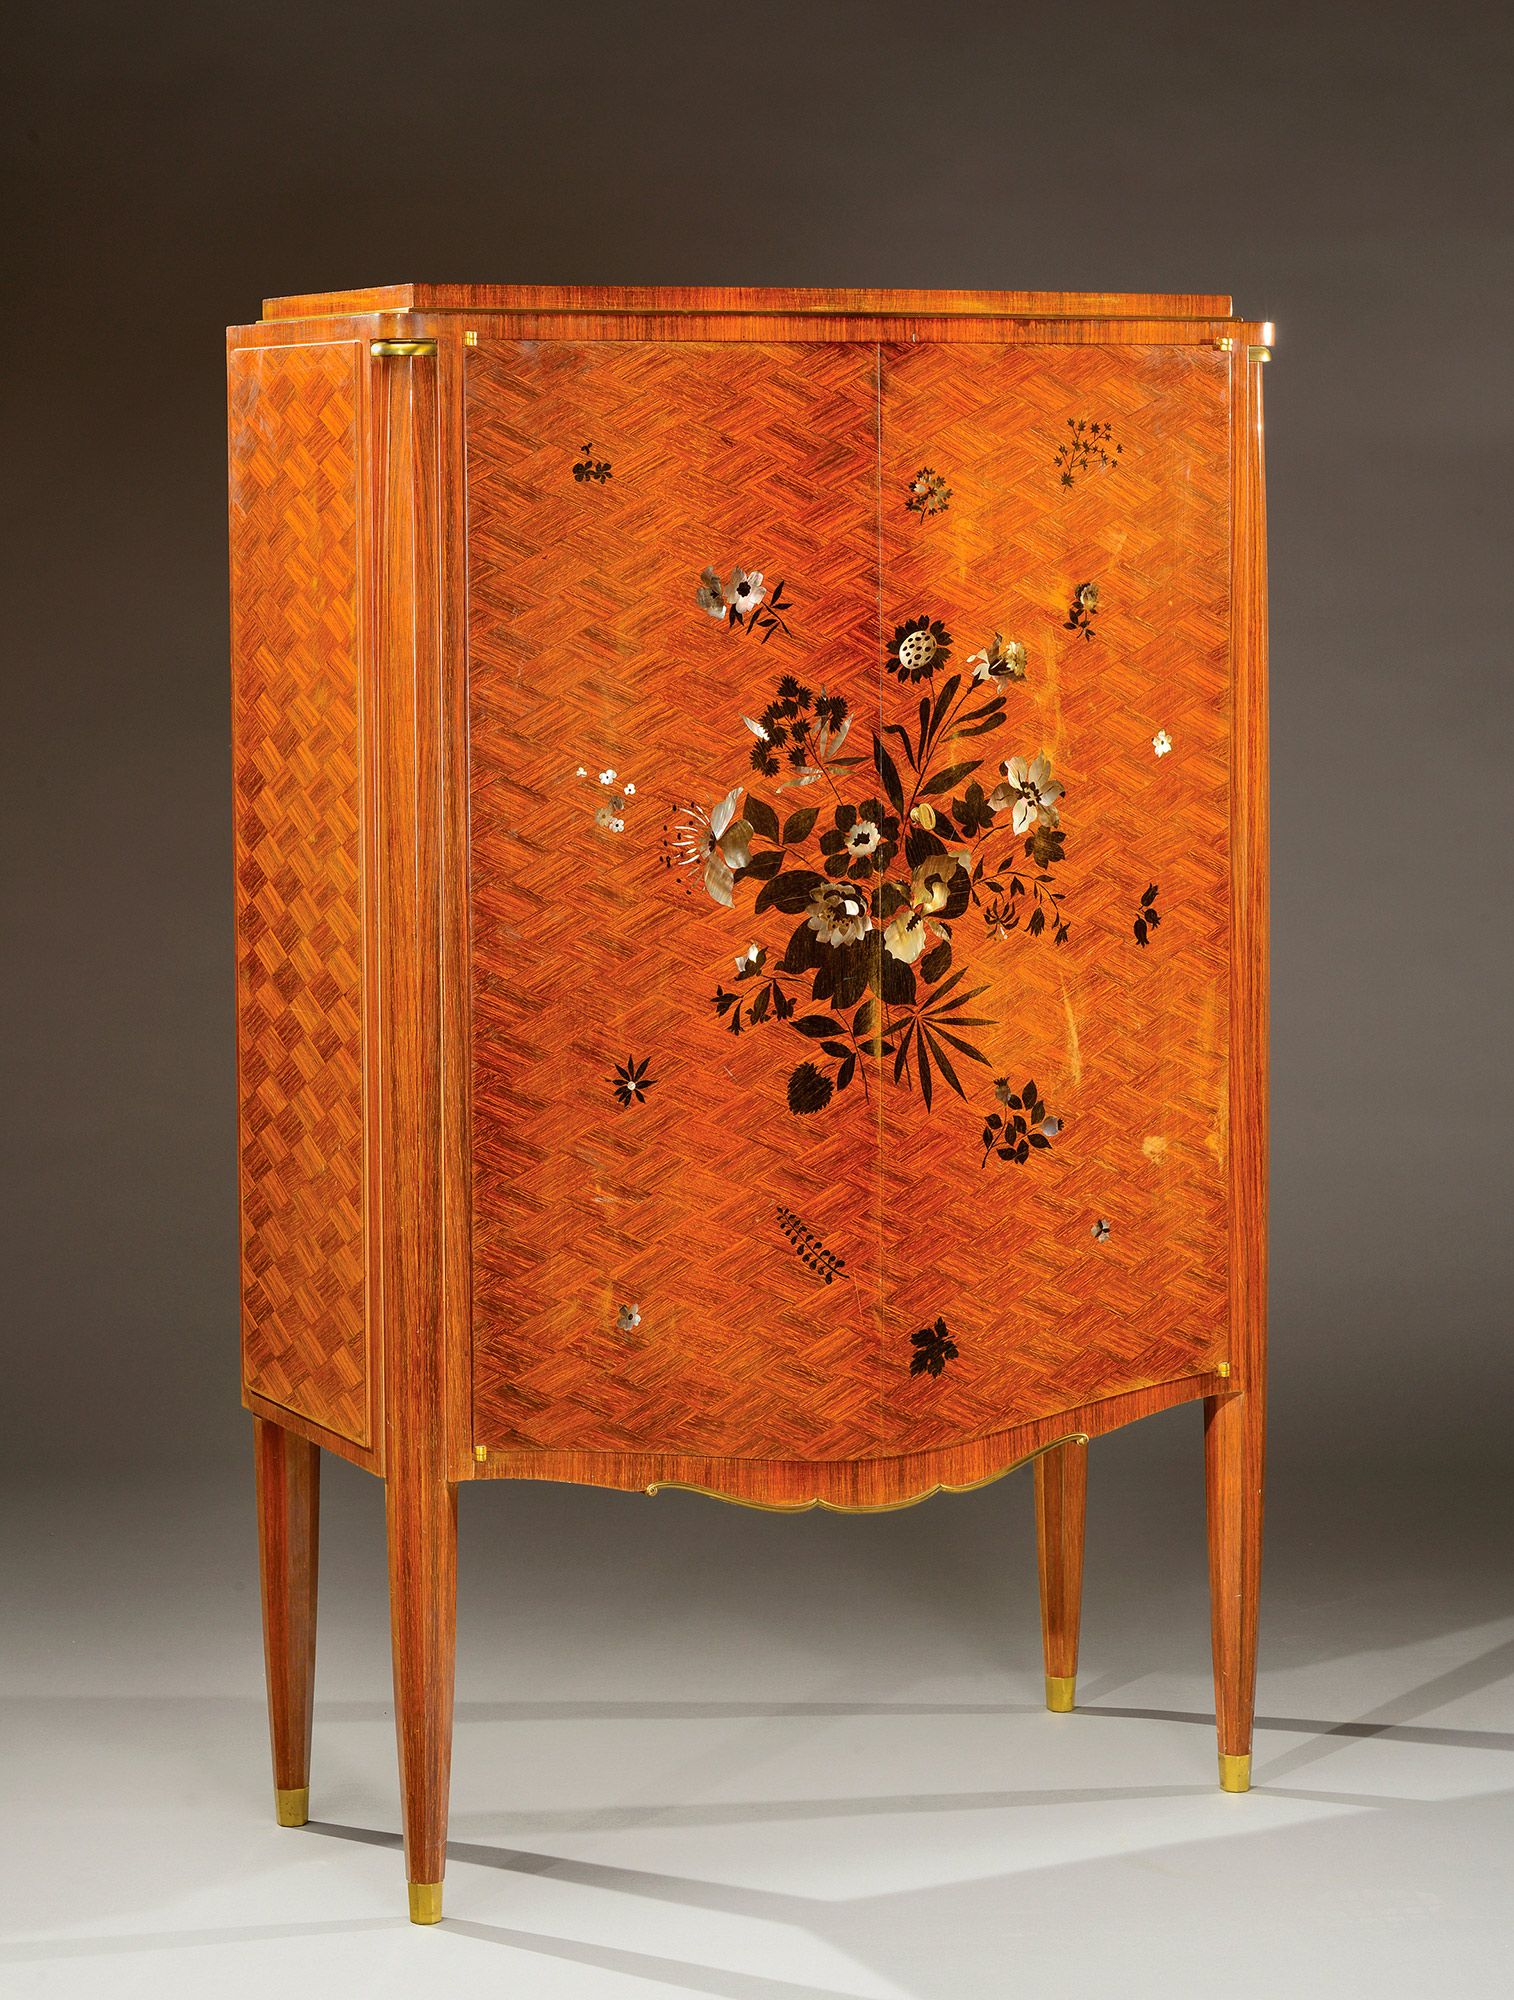 jules leleu 1883 1961 a rosewood of the indies veneer cupboard opening by two doors with an exotic wood and mother of pearl marquetry circa 1930 1940